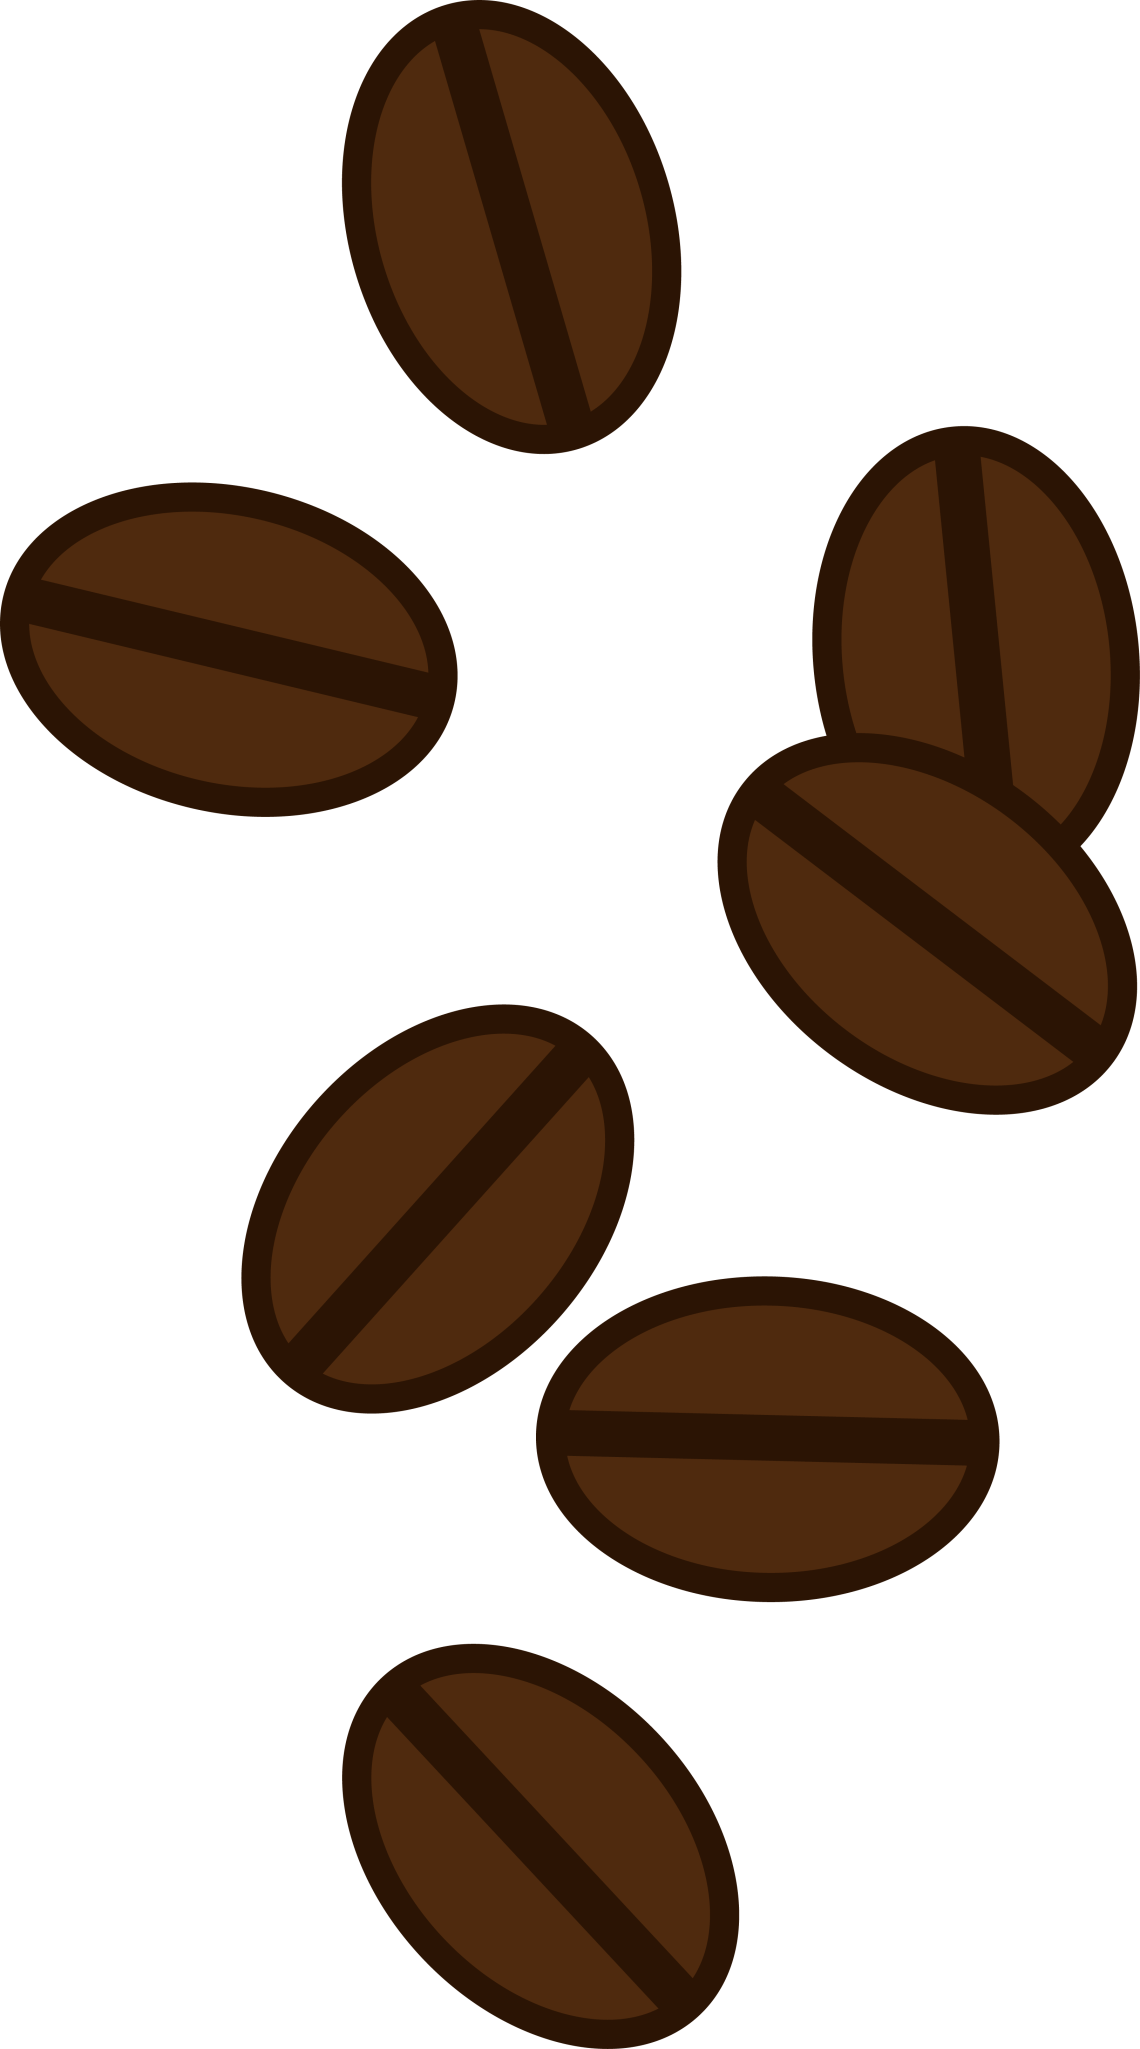 Image Result For The Coffee Bean